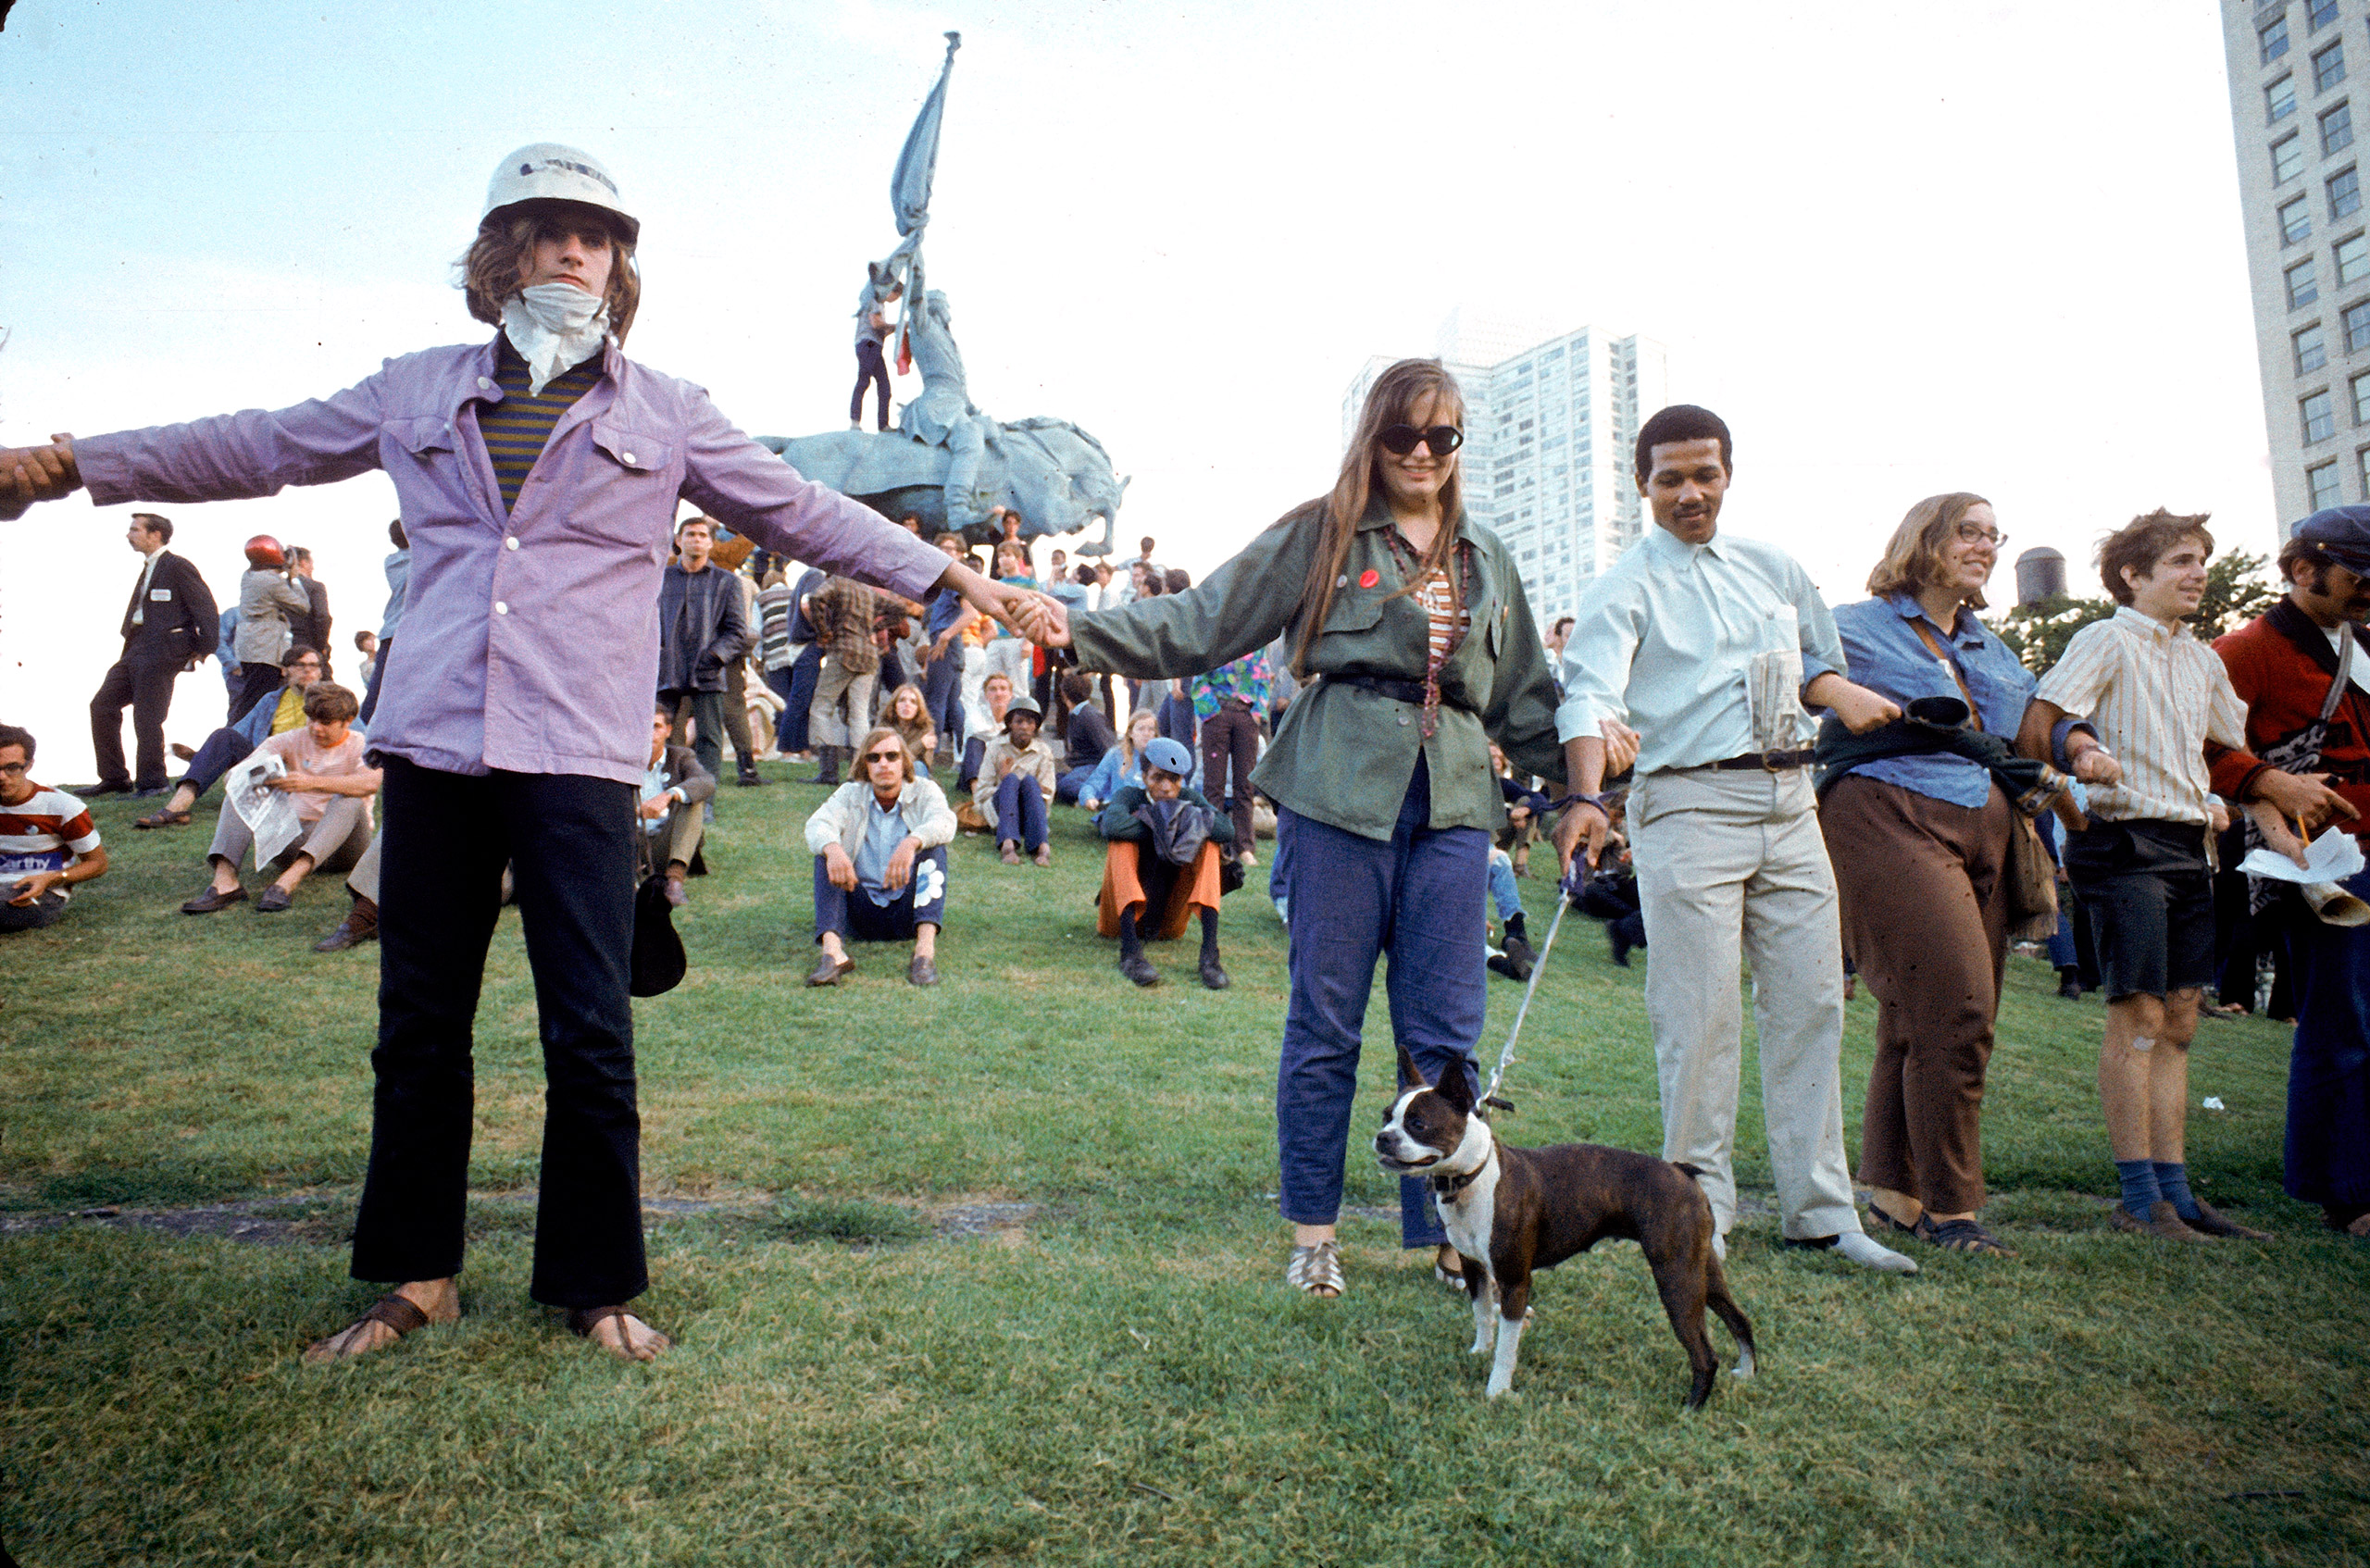 Yippie protesters linking arms in Grant Park demonstration during the 1968 Democratic National Convention.